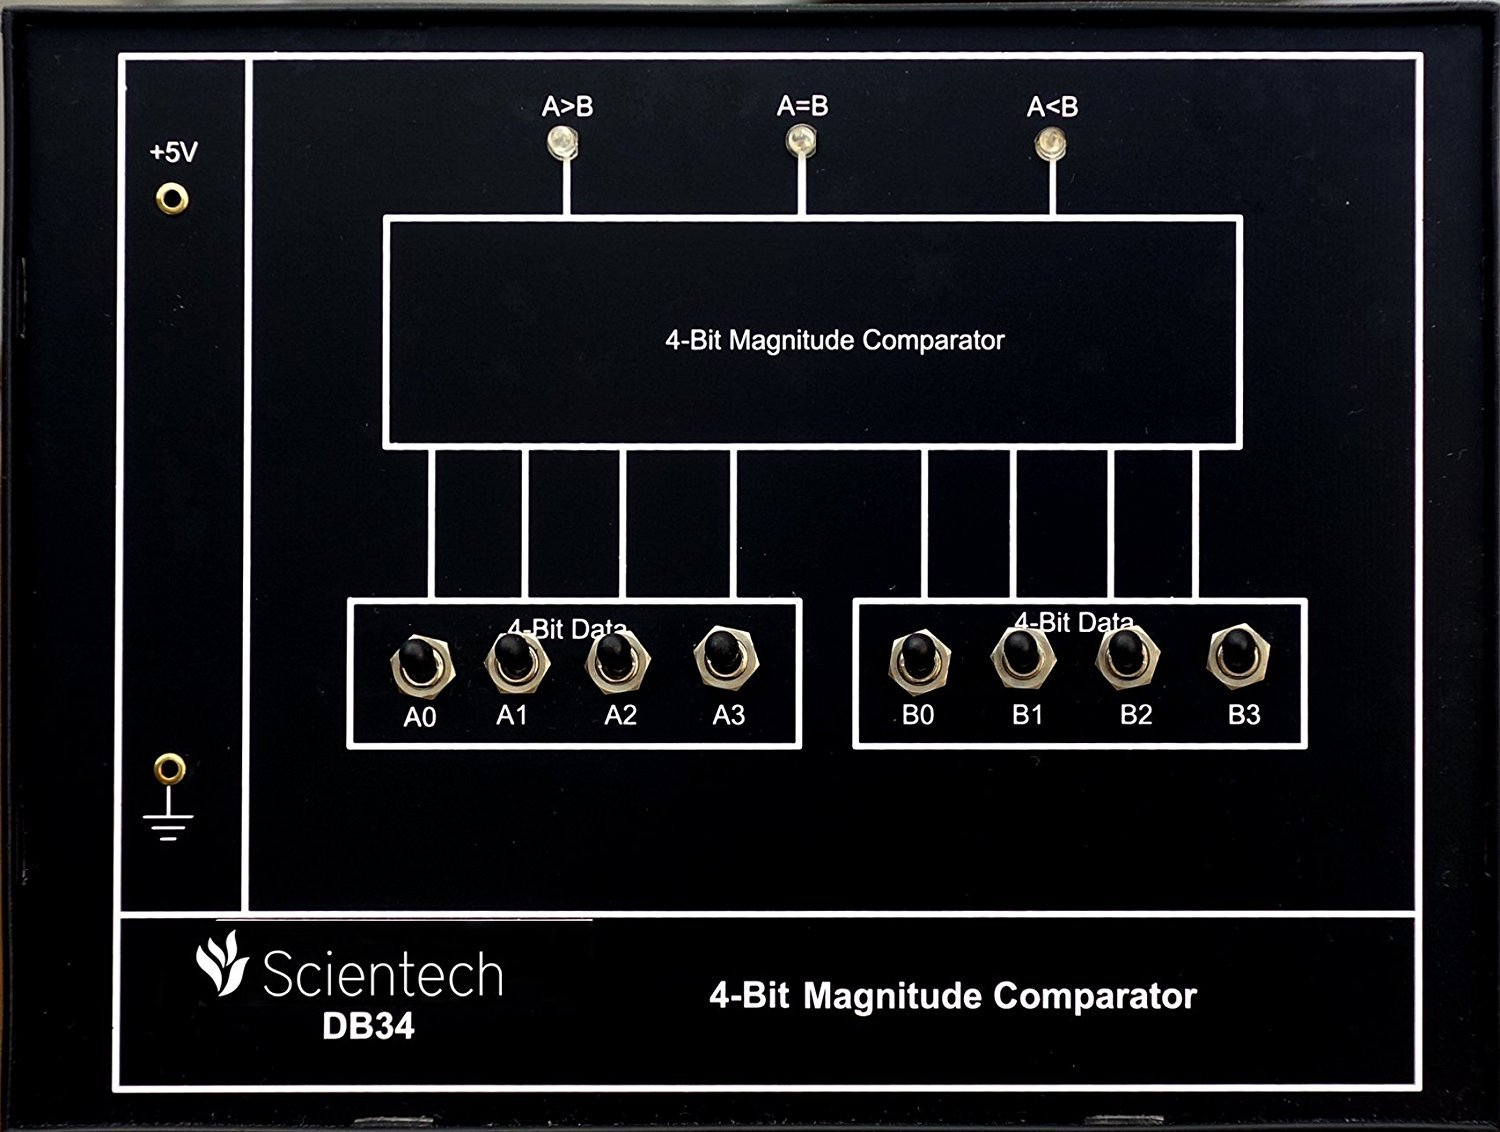 Db34 4 Bit Magnitude Comparator Experiment Board And Trainer Kit 2 Logic Diagram With 1 Year Warranty